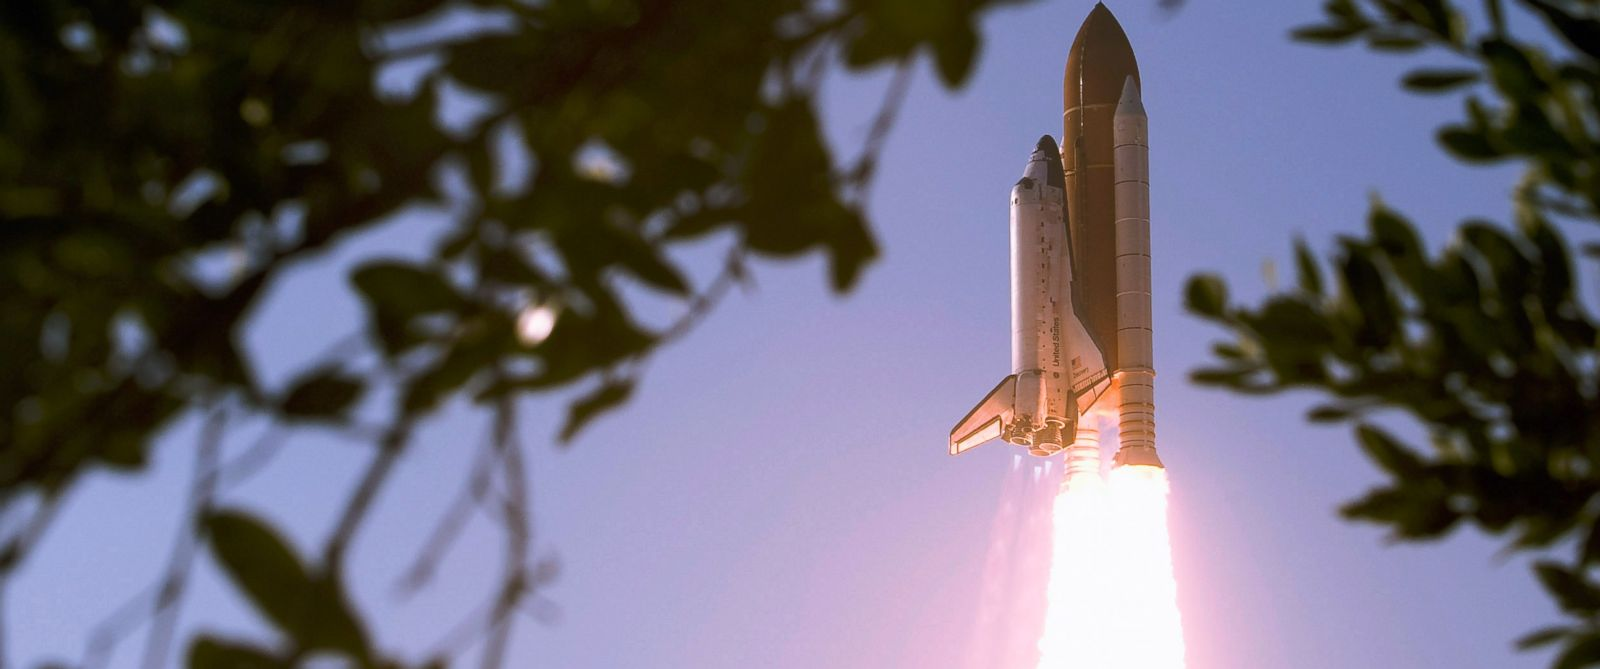 PHOTO: Space shuttle Discovery lifts off from launch pad 39A at the Kennedy Space Center